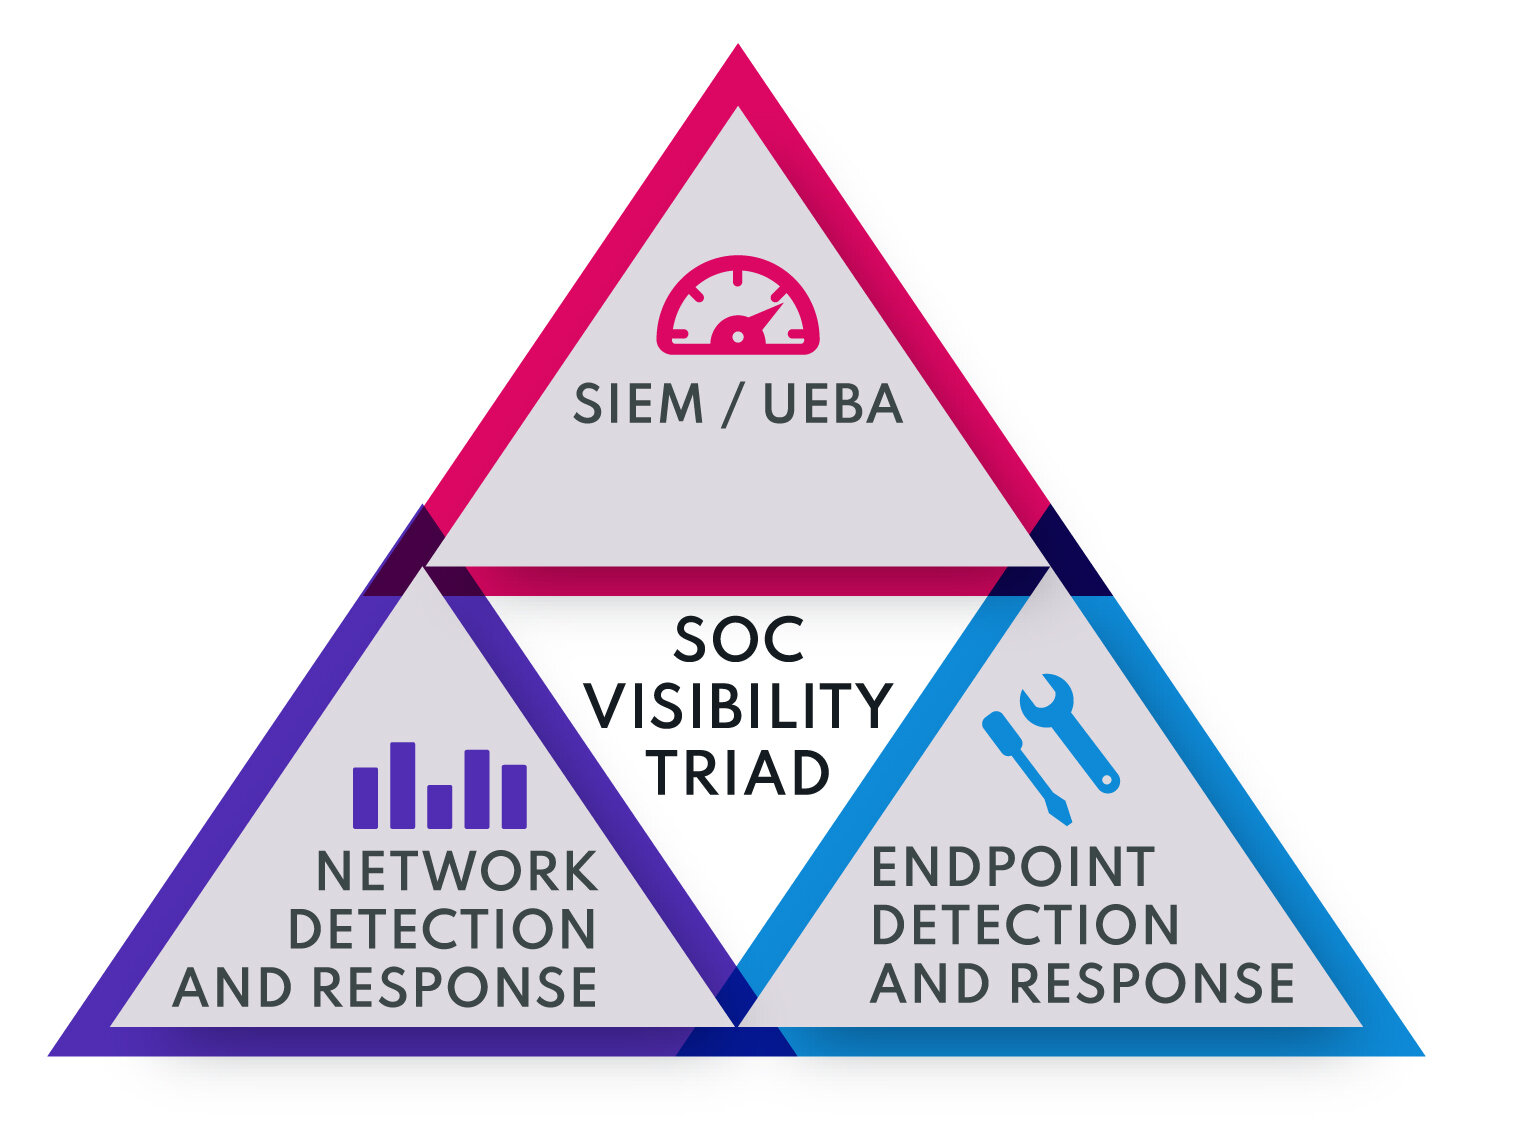 The SOC Visibility Triad - In an ideal world, you'd want both EDR and NDR. These, combined with SIEM/UEBA, form what is commonly referred to as the SOC Visibility Triad, a term coined by Gartner. It's a military term based on the Nuclear Triad of earth, air and sky defence dating from the days of the Cold War and is appropriately named because it gives you the widest visibility of the network.The virtualisation of SOC technology means many more businesses are now able to take advantage of these sophisticated security tools, but they cannot necessarily justify the investment needed to roll out both EDR AND NDR.EDR seems like the easier option because it generates less data, and it's because of this that even larger businesses have chosen to deploy EDR. But the reality is that an experienced attacker can easily subvert an EDR. In contrast, NDR sees all and cannot be fooled. For this reason, it could be argued it's actually more important to have NDR as part of your arsenal than EDR.In our next blog, we'll look more closely at what NDR does, why businesses have baulked at deploying NDR, and what can be done to make it more viable. In the meantime, if this is a subject that's of interest to you, please contact us for more information.